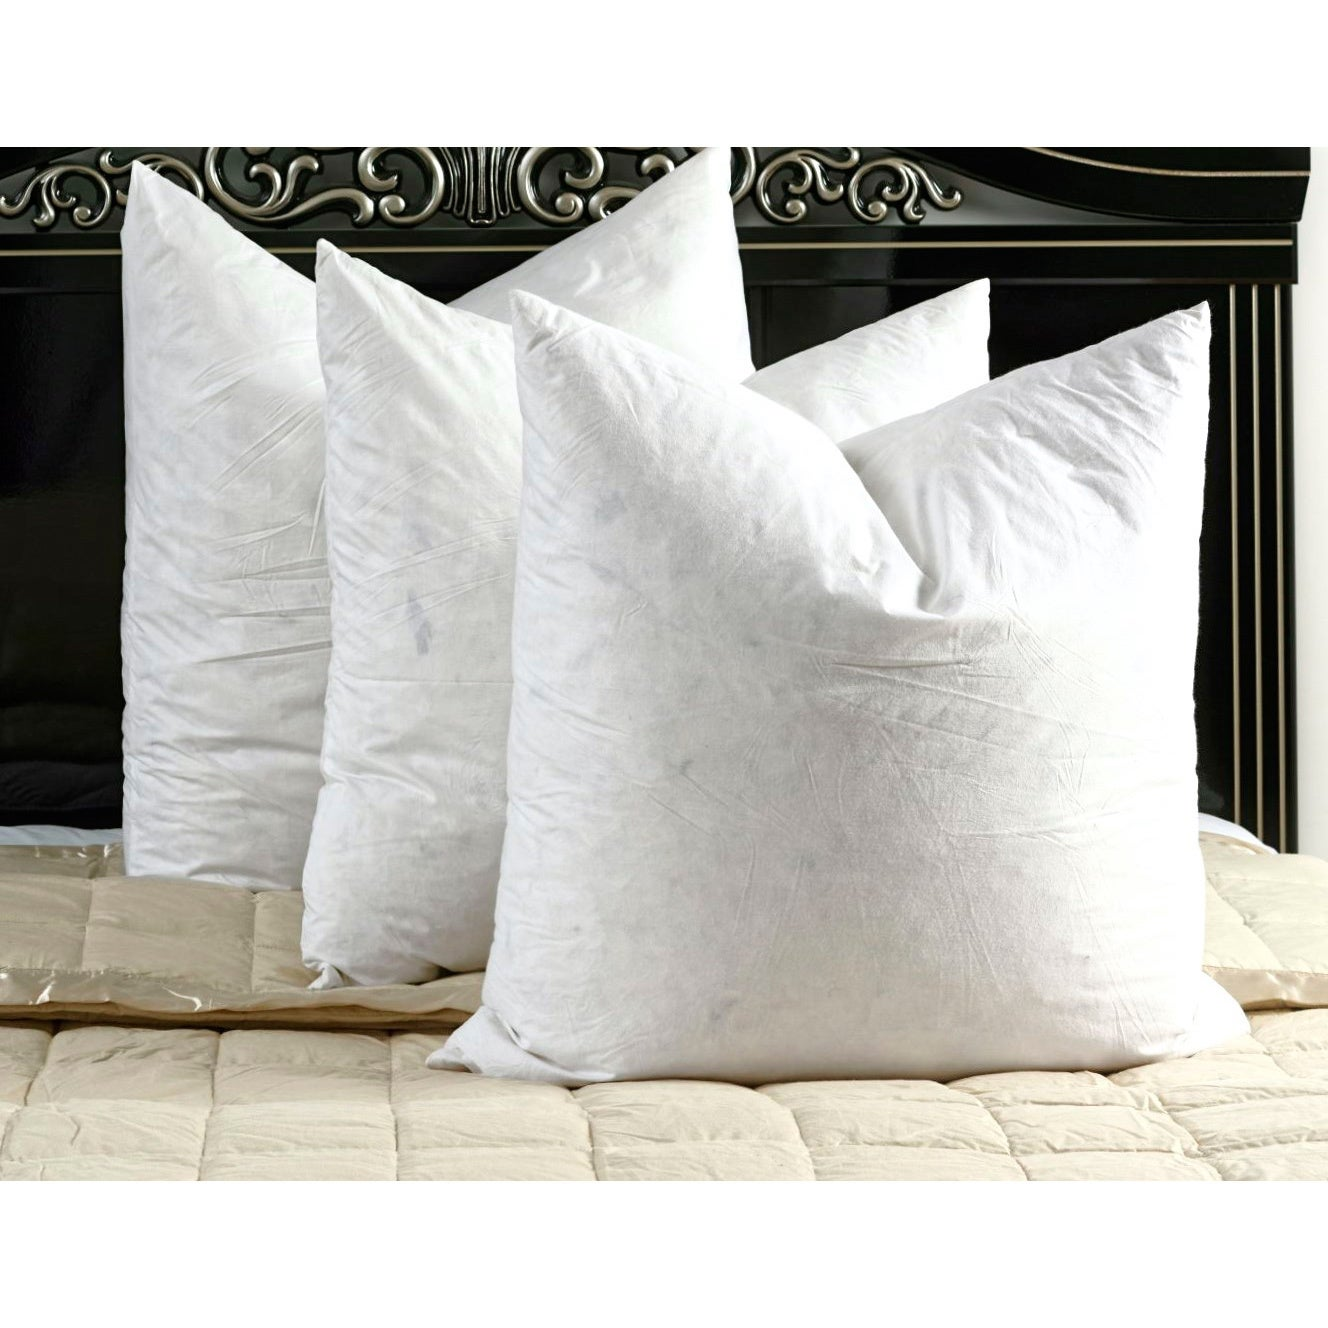 MORE MARKET MADNESS | Feather pillows